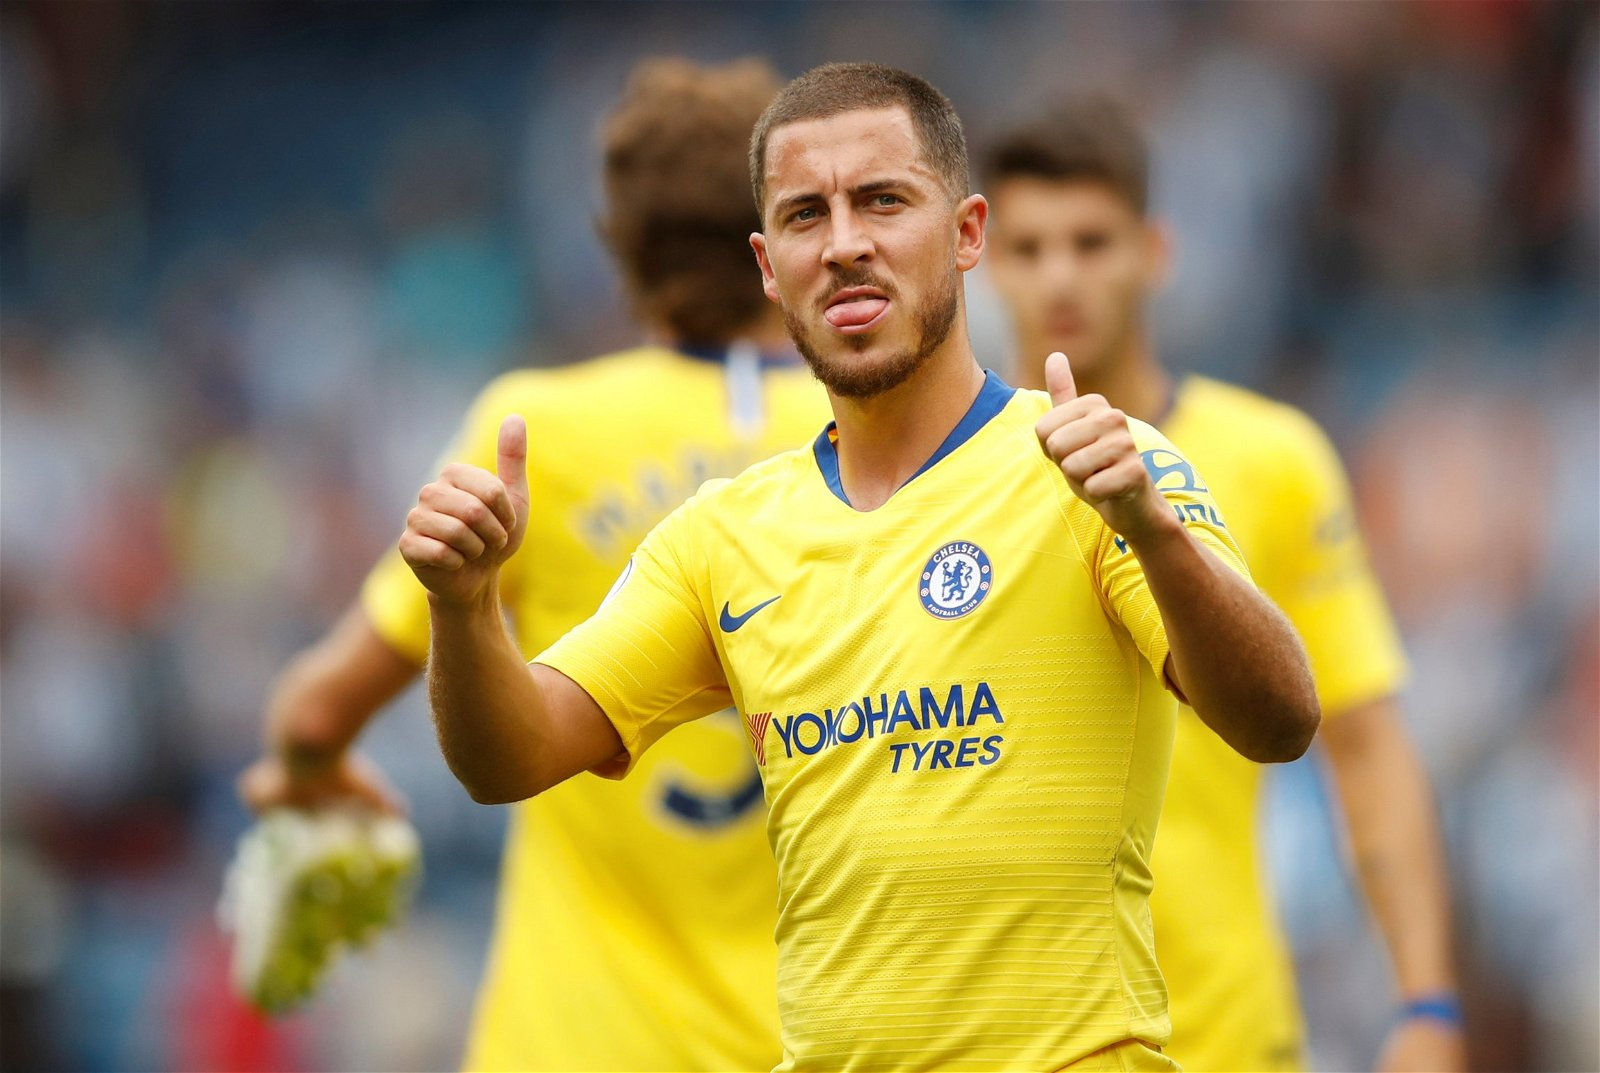 Eden Hazard celebrates creating a goal against Huddersfield